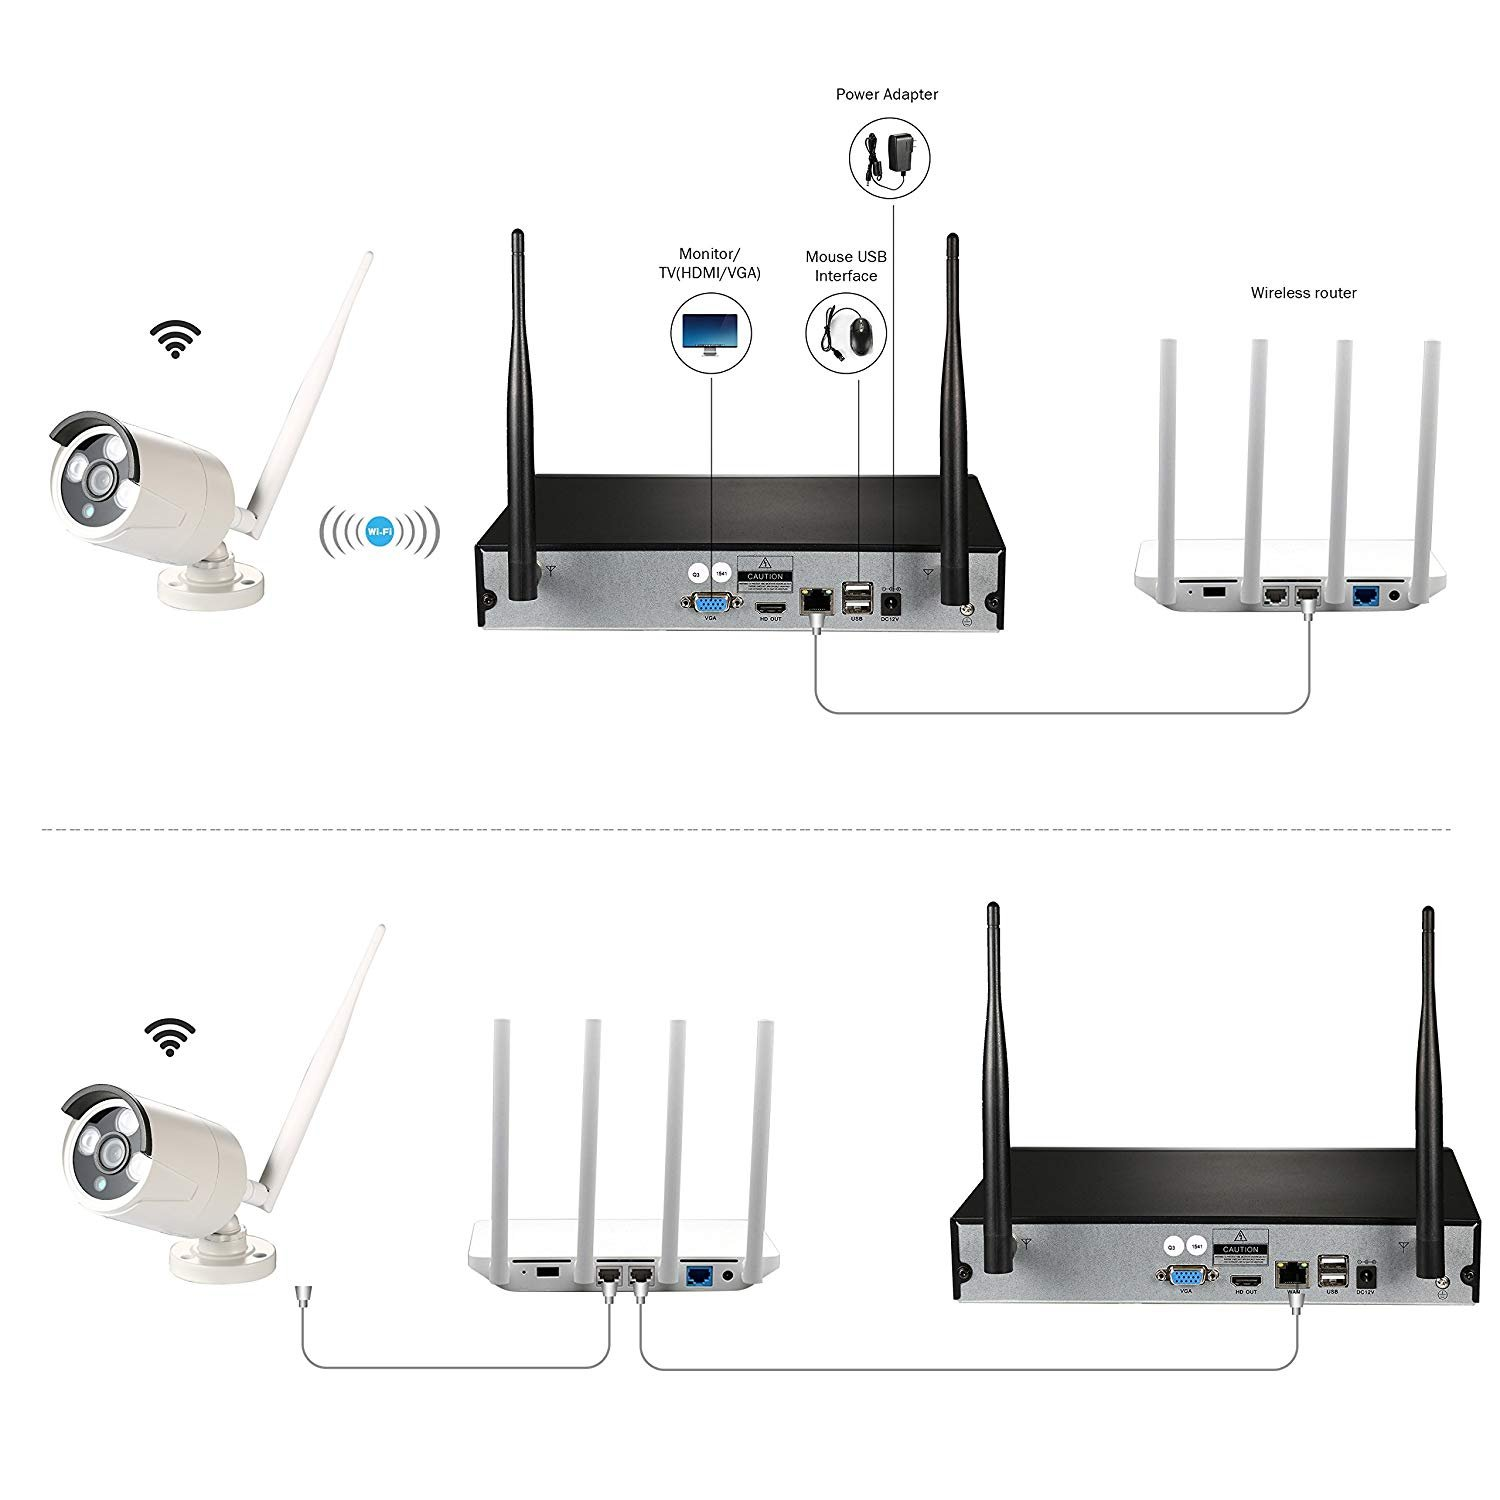 Security Camera Set Outdoor Wifi, 4 x 1080P Wireless CCTV Cameras Kit for Home Garden, IP Surveillance Camera System with Night Vision, Motion Detector, NVR Recorder with 1TB Hard Disk, IP66 Waterproof, Motion Sensor for Android,IOS & PC ,